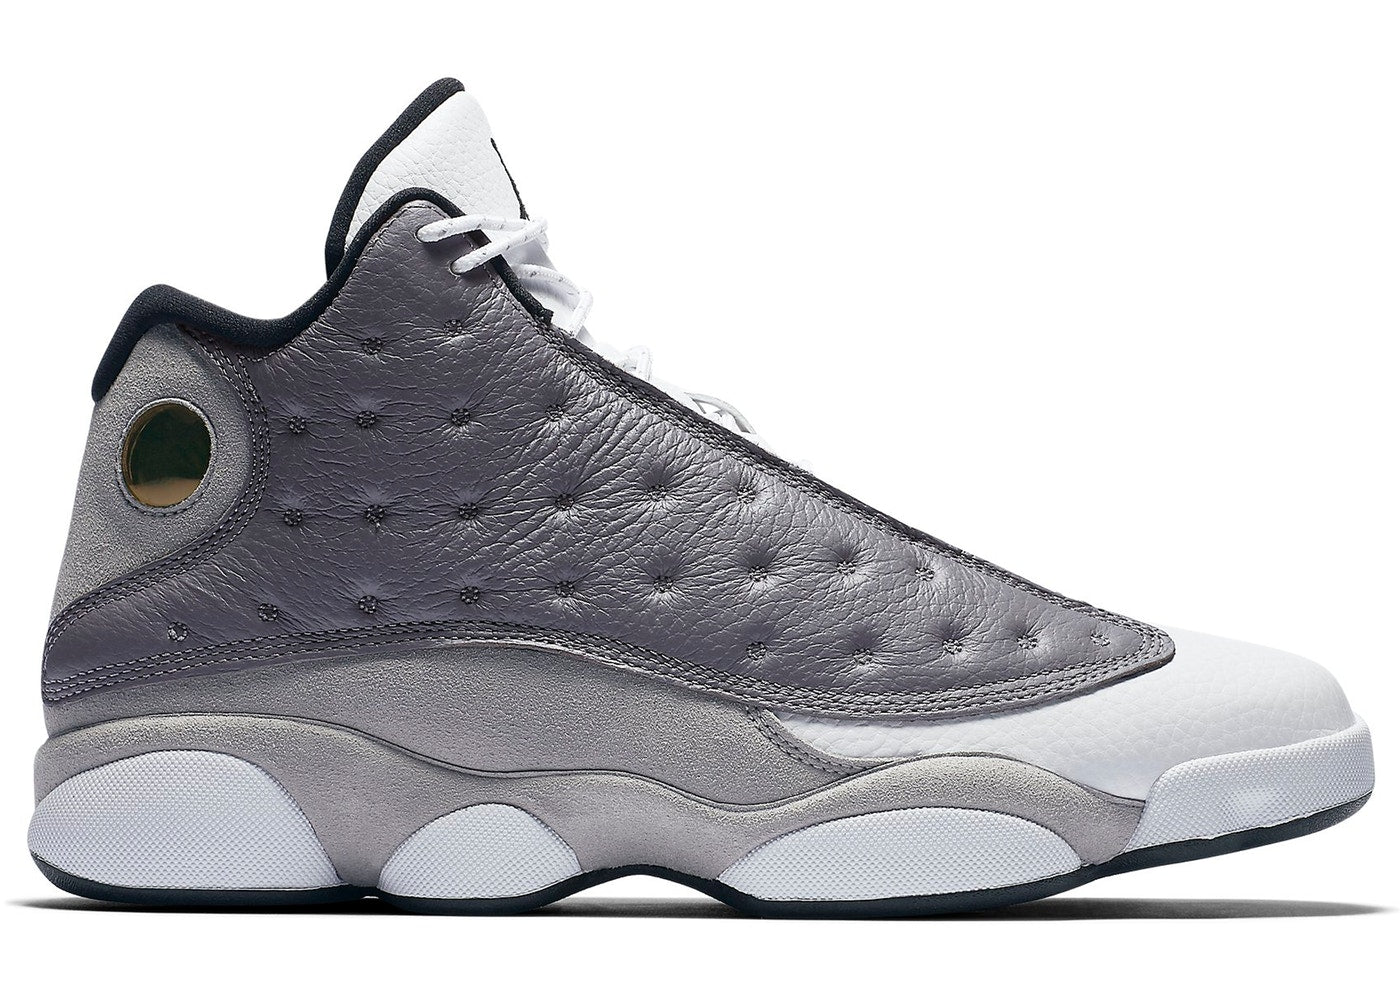 the latest 79c31 83c20 New Jordan 13 Retro